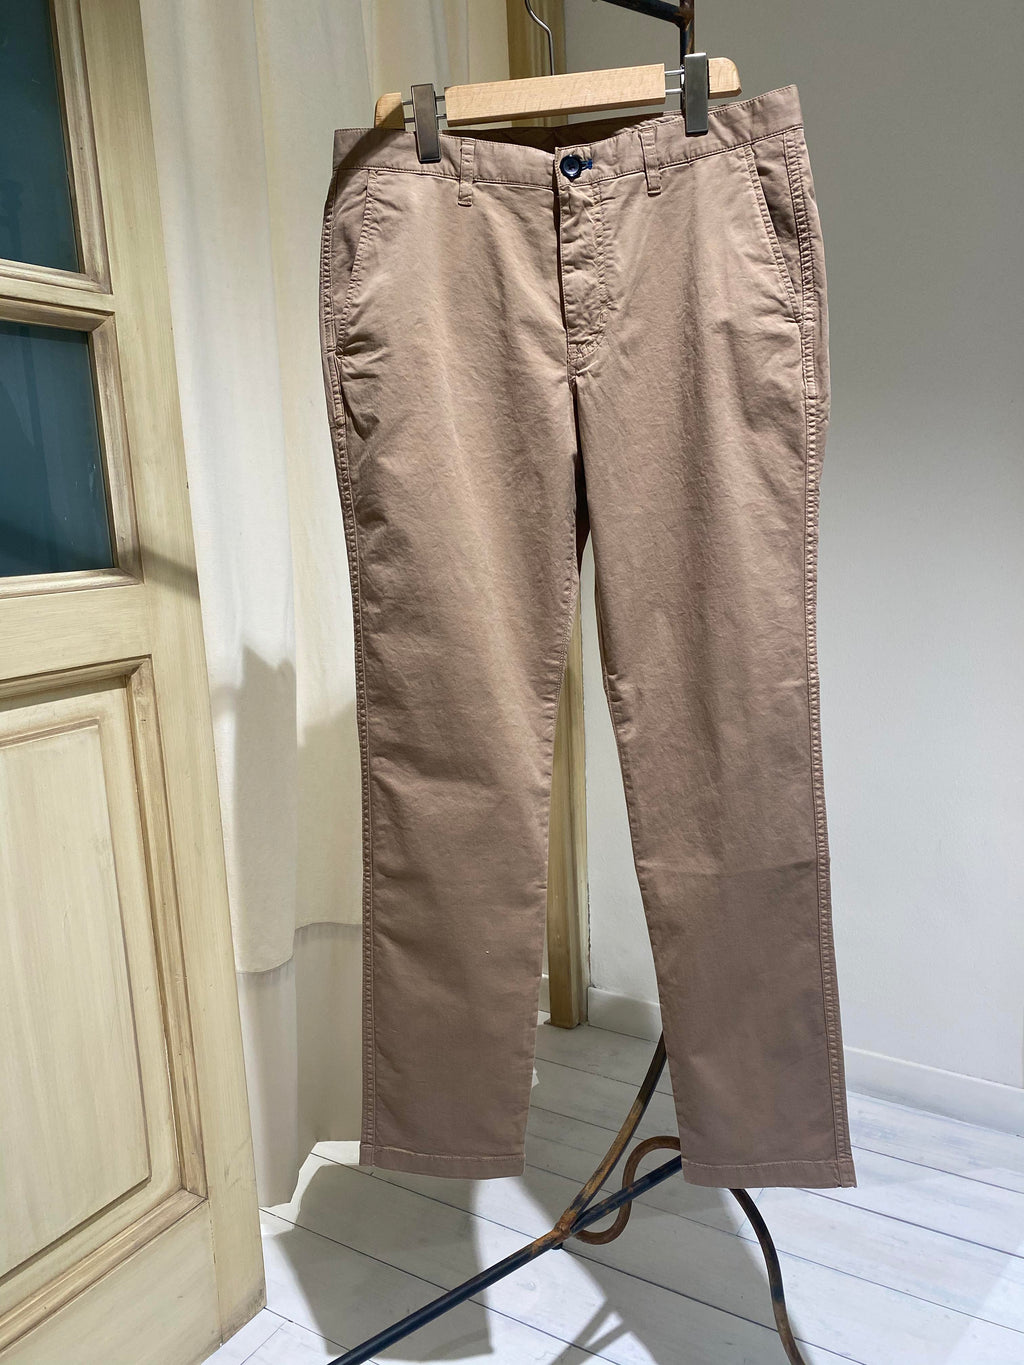 M Chino Mid FIt - PS PAUL SMITH  - Kaki